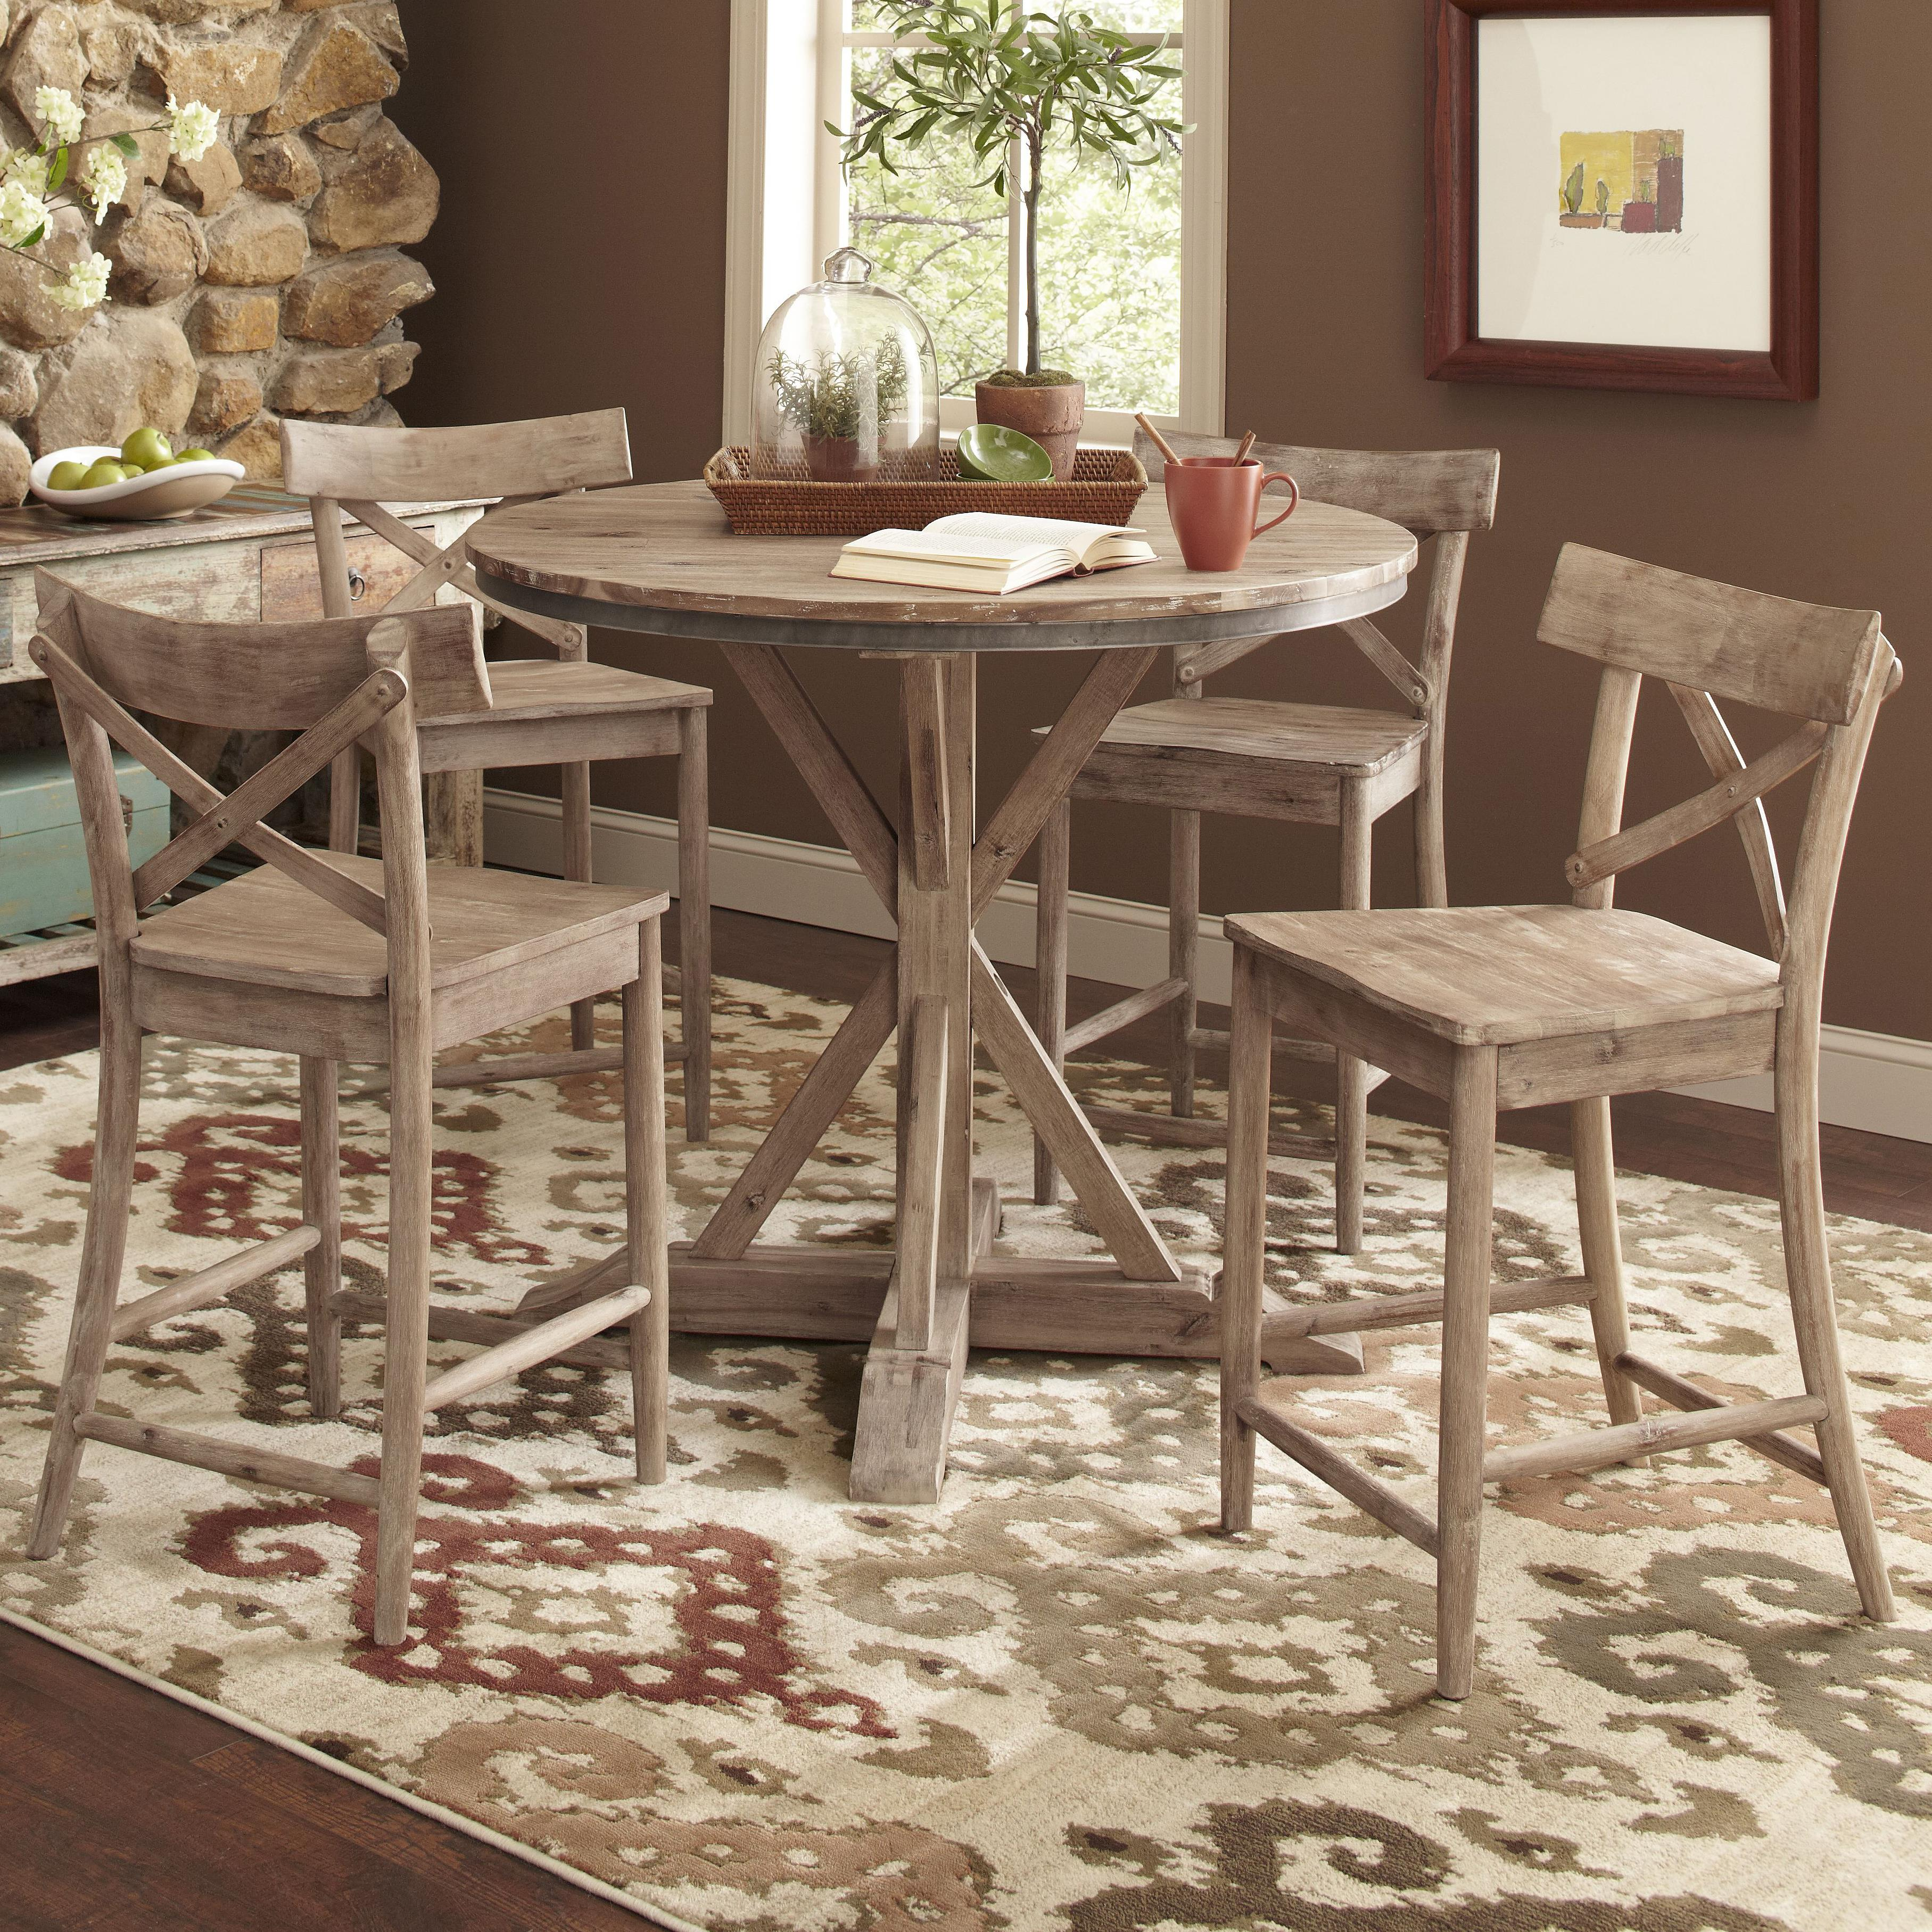 Largo callista rustic casual counter height dining table for Counter height dining table set